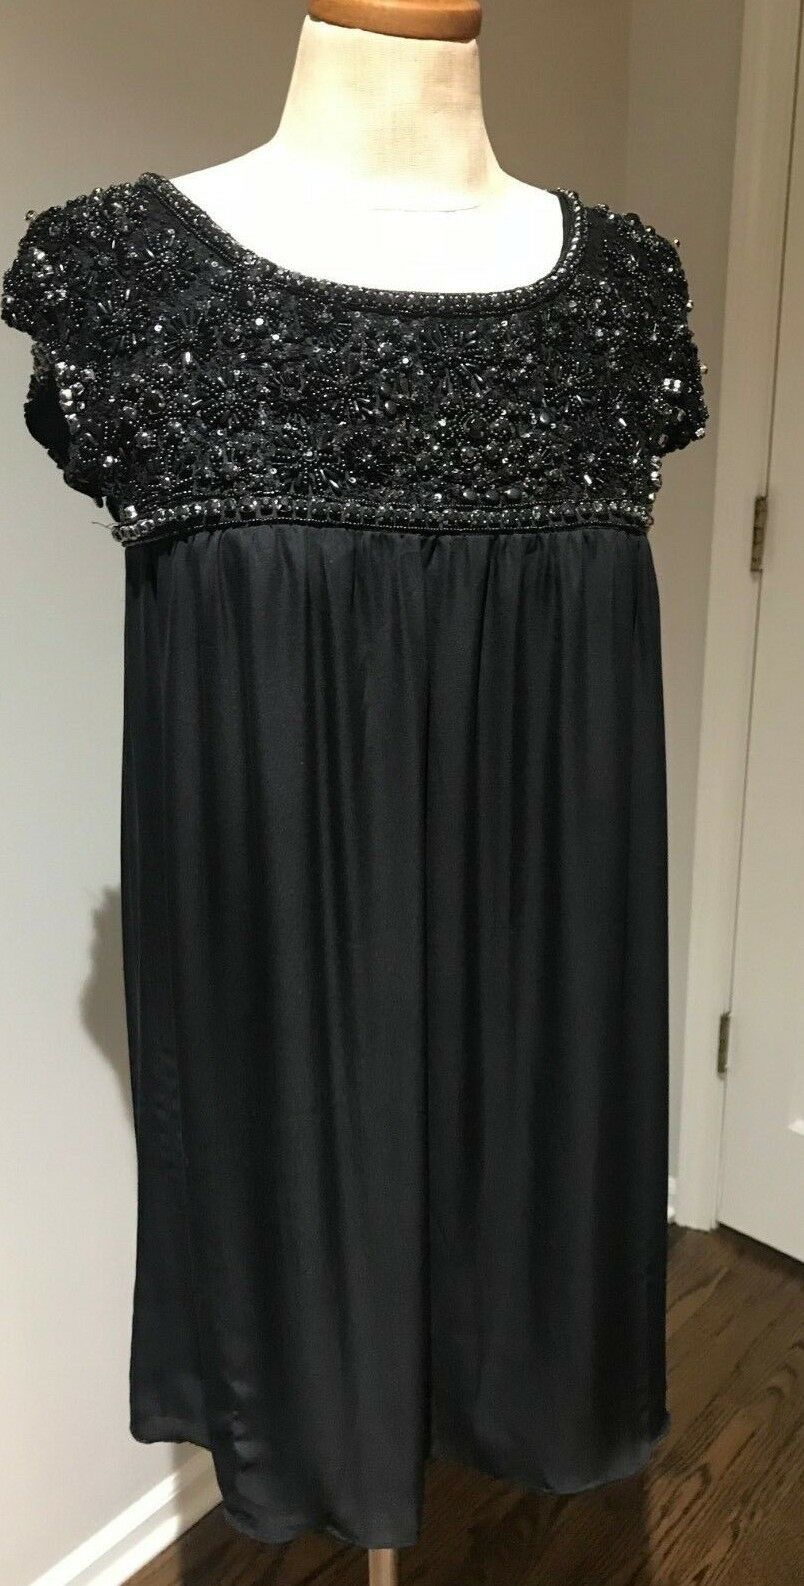 Alice and Olivia Woman's Dress Beads Sequins schwarz 100% SILK Party  Sz  S